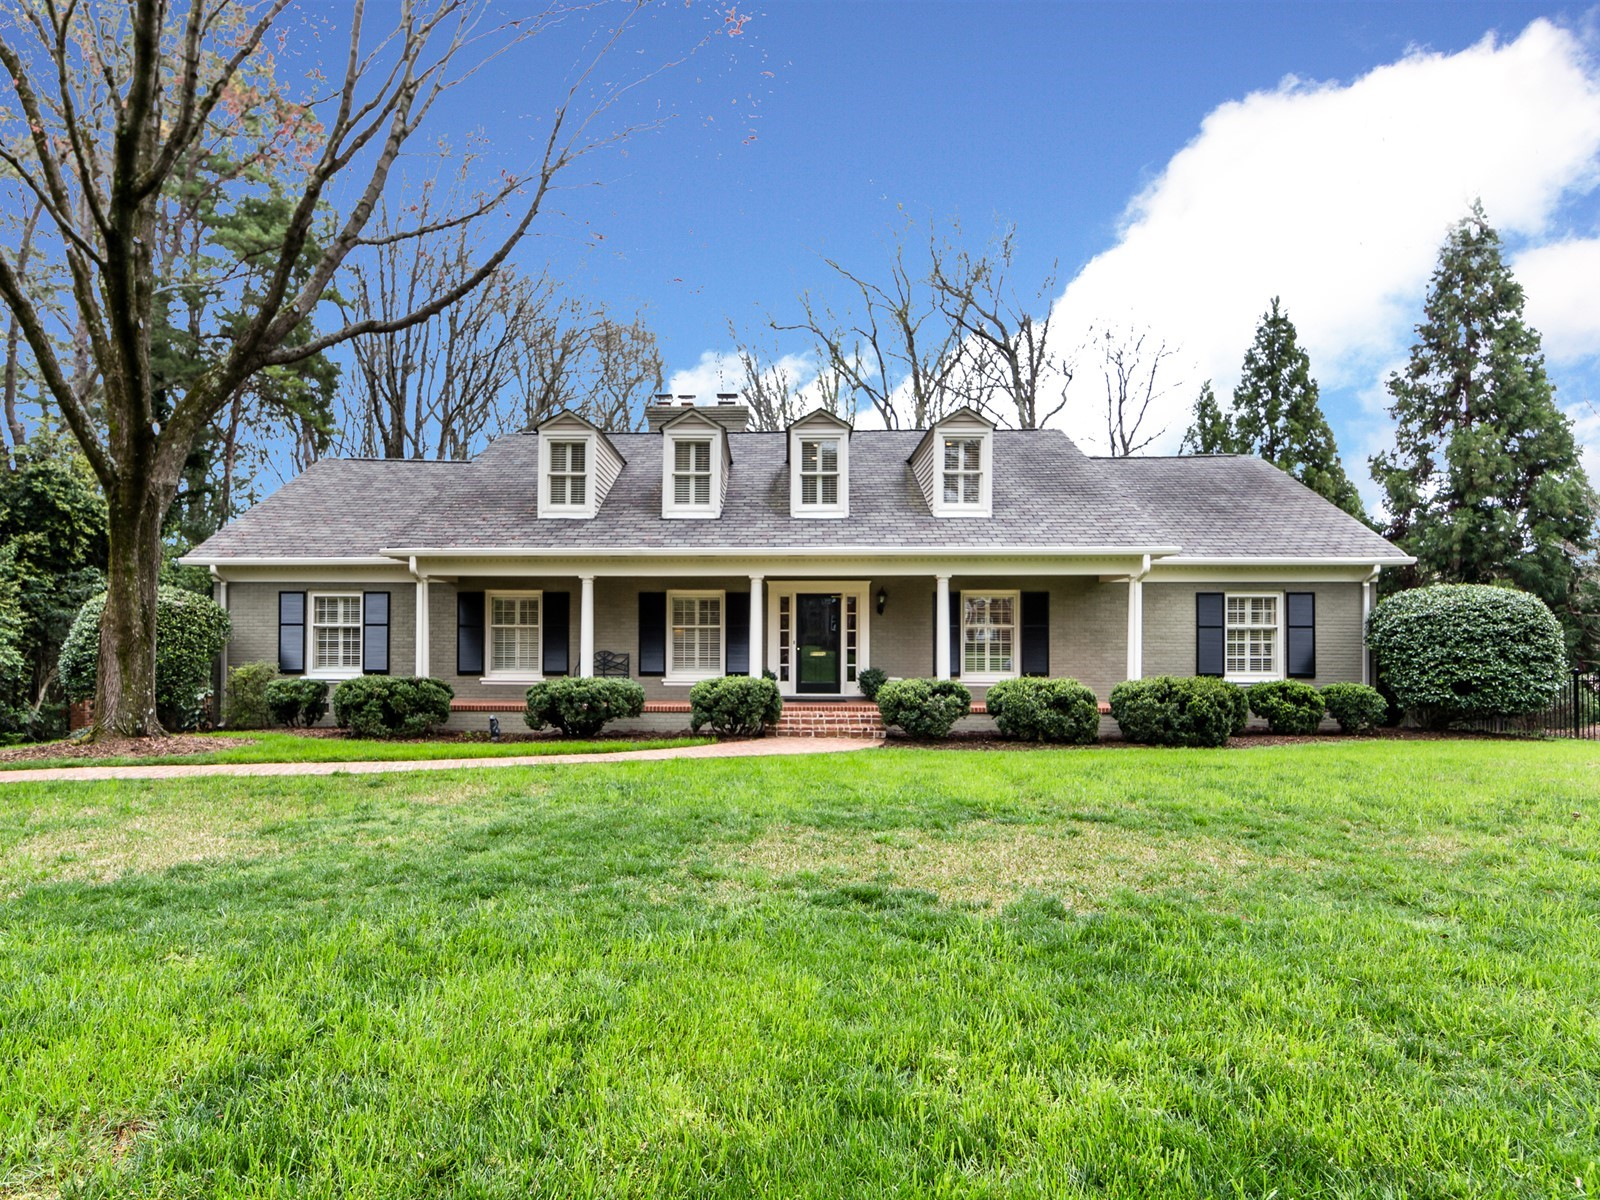 House hunting? Top 11 open houses this weekend